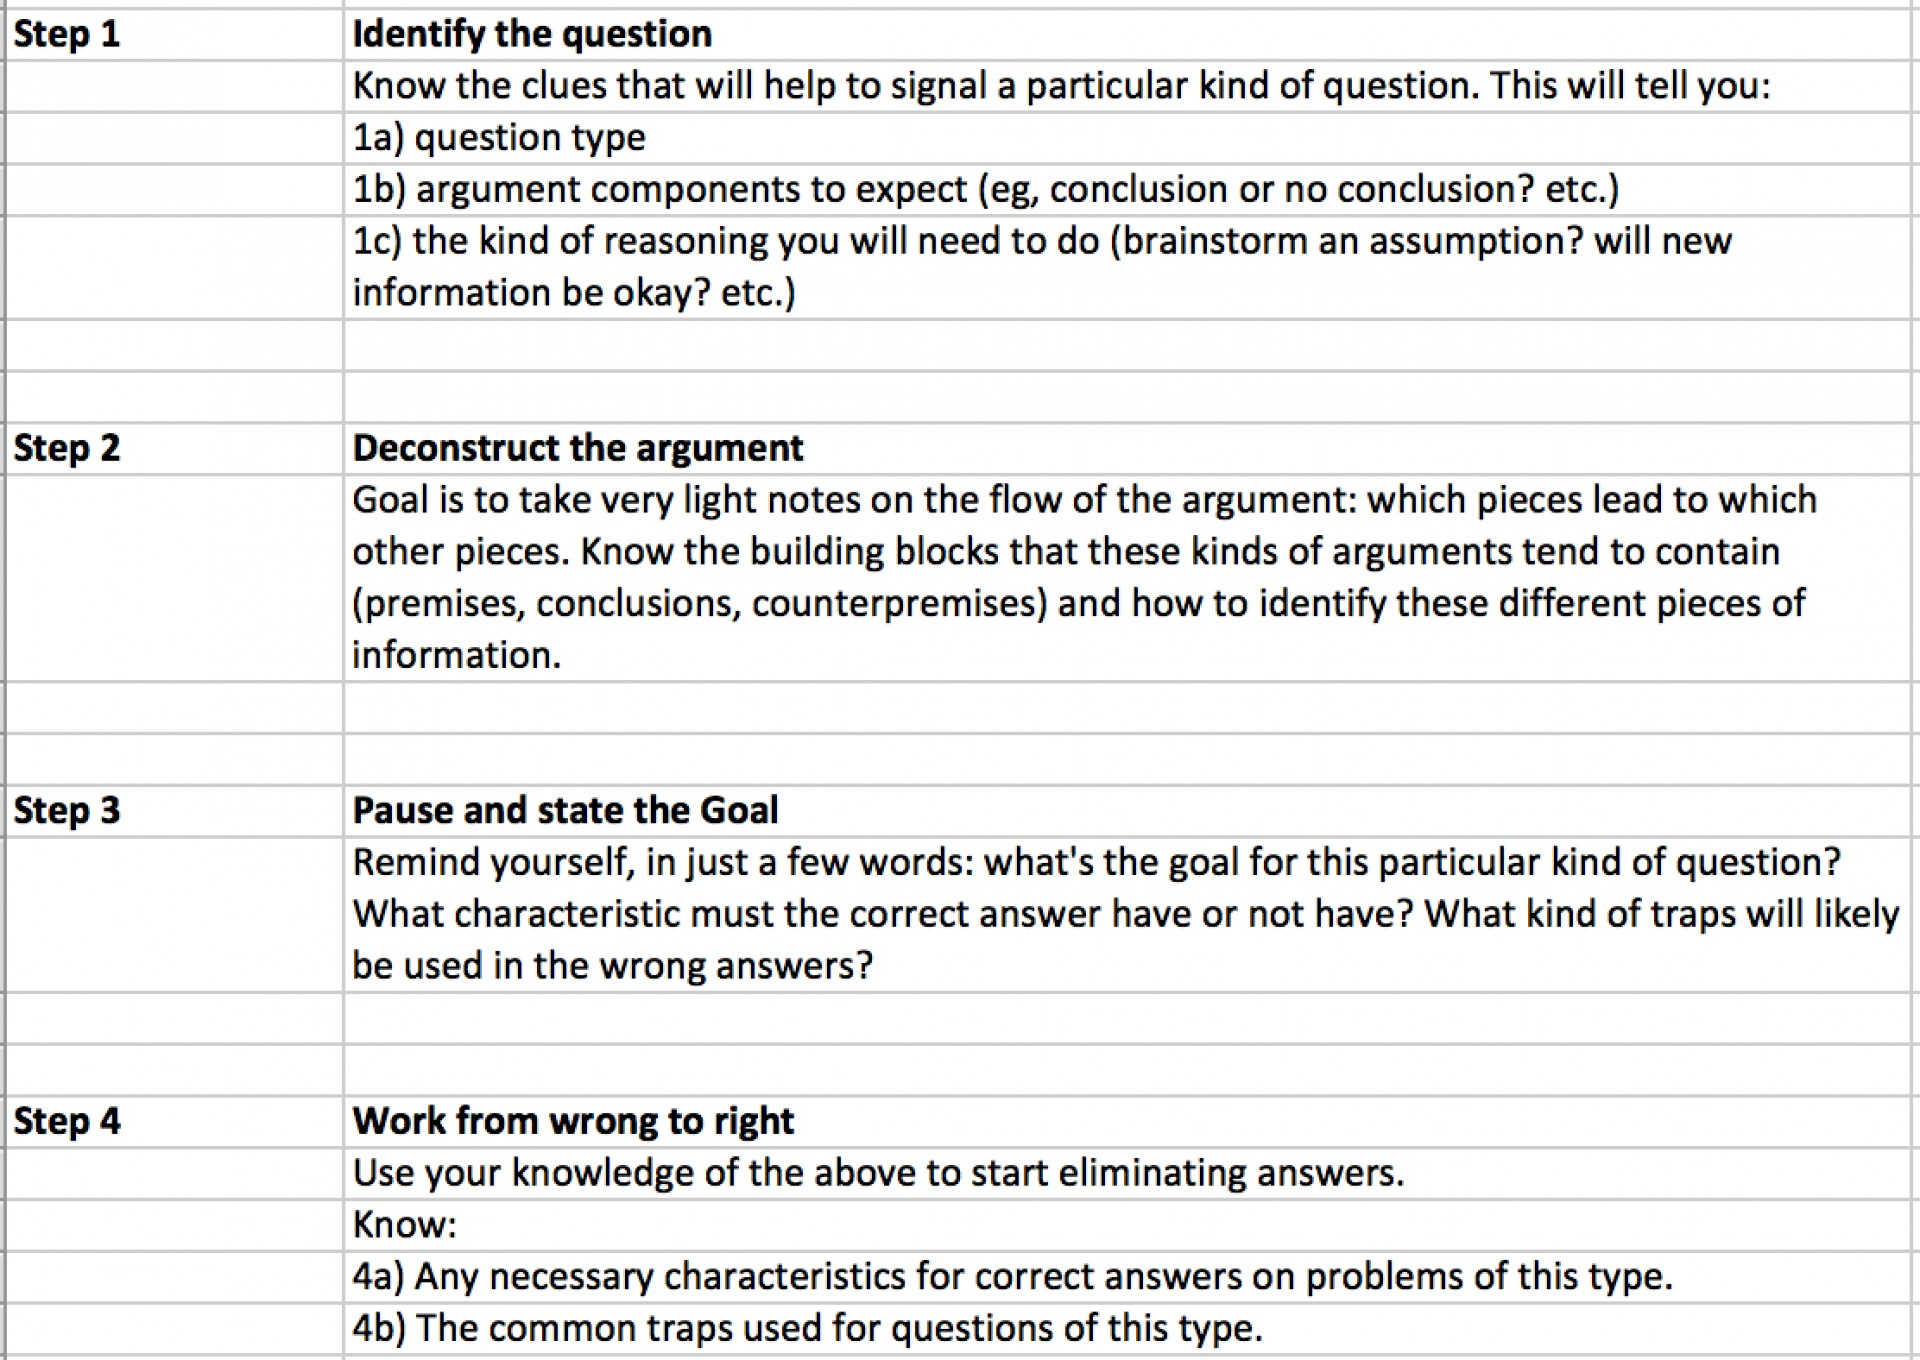 016 Gmat Essay Example Image 1 How To Master Every Critical Reasoning Question Typ On Tips For Quant Problem Astounding Sample Pdf Awa Score 4.5 1920